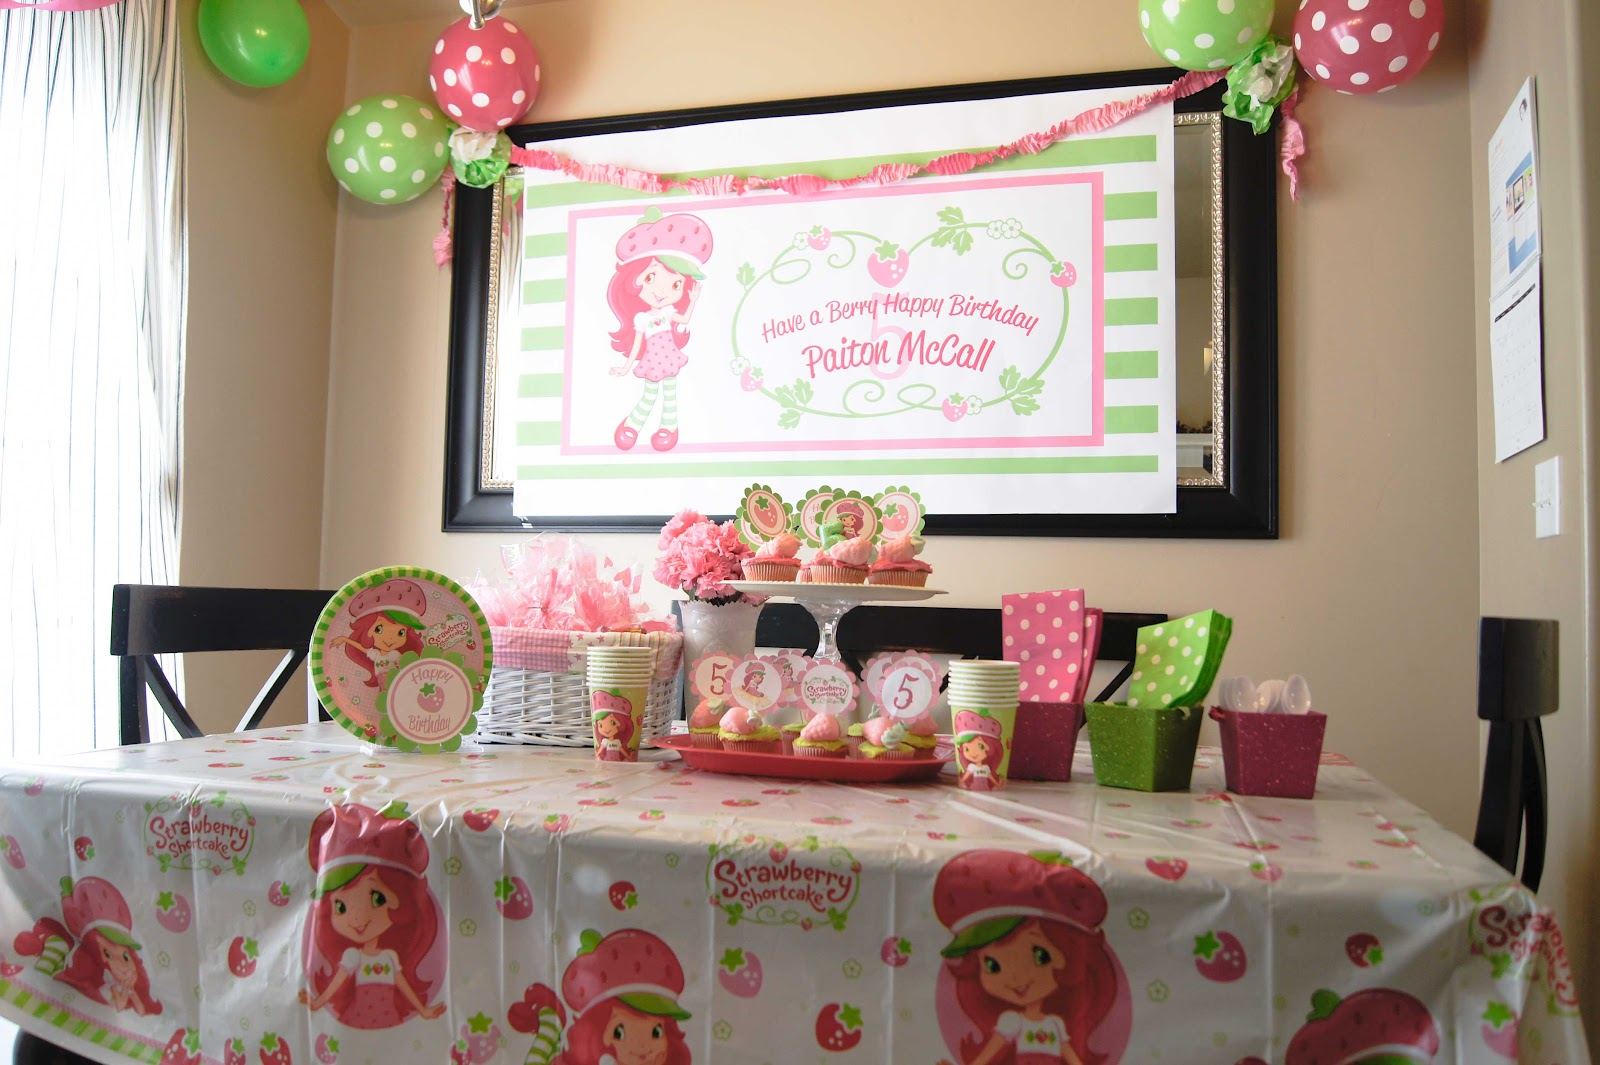 Birthday Party Ideas For Your One Year Old Source The Secret To A Simple Strawberry Shortcake